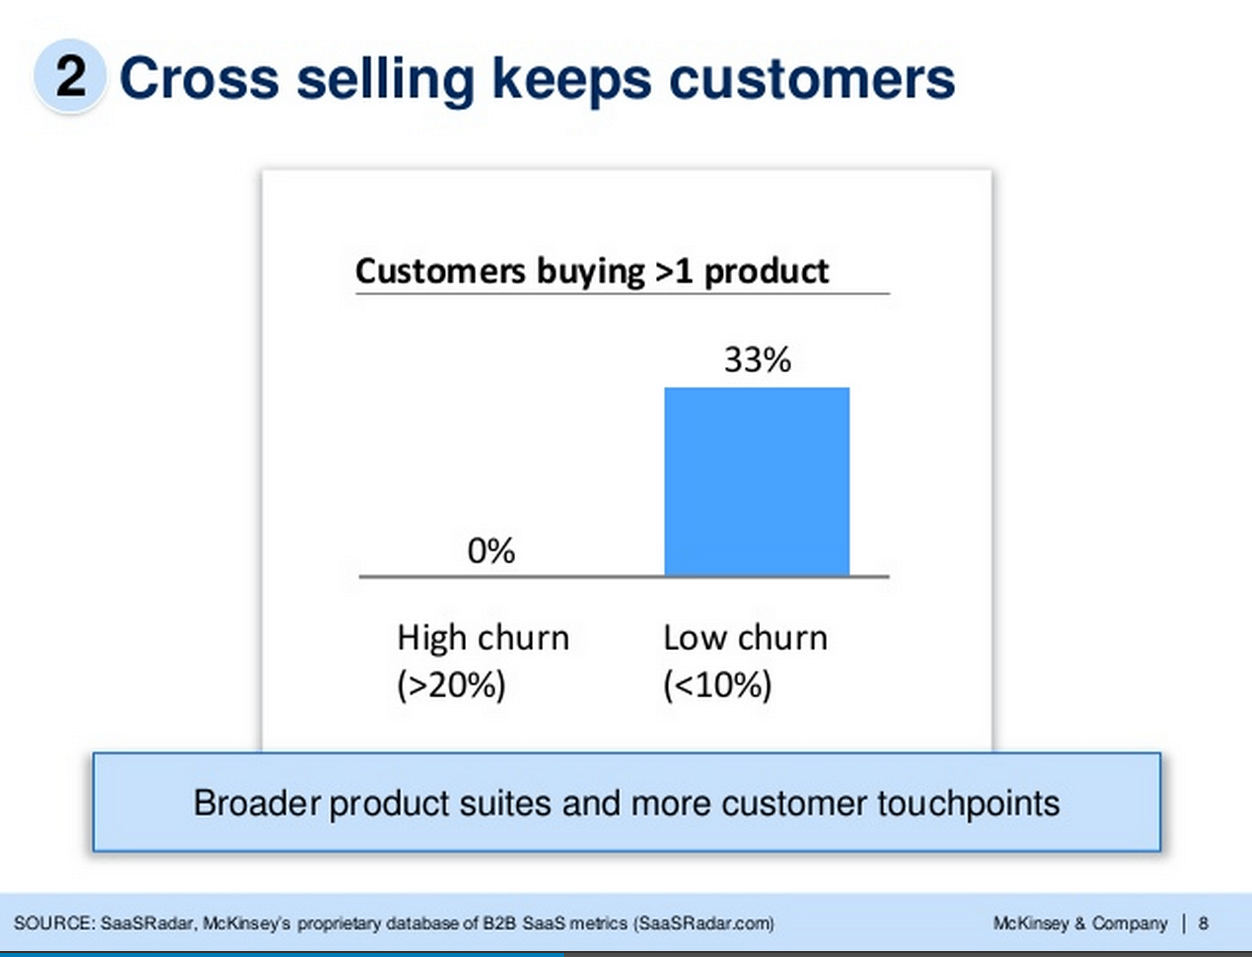 Cross selling keeps customers